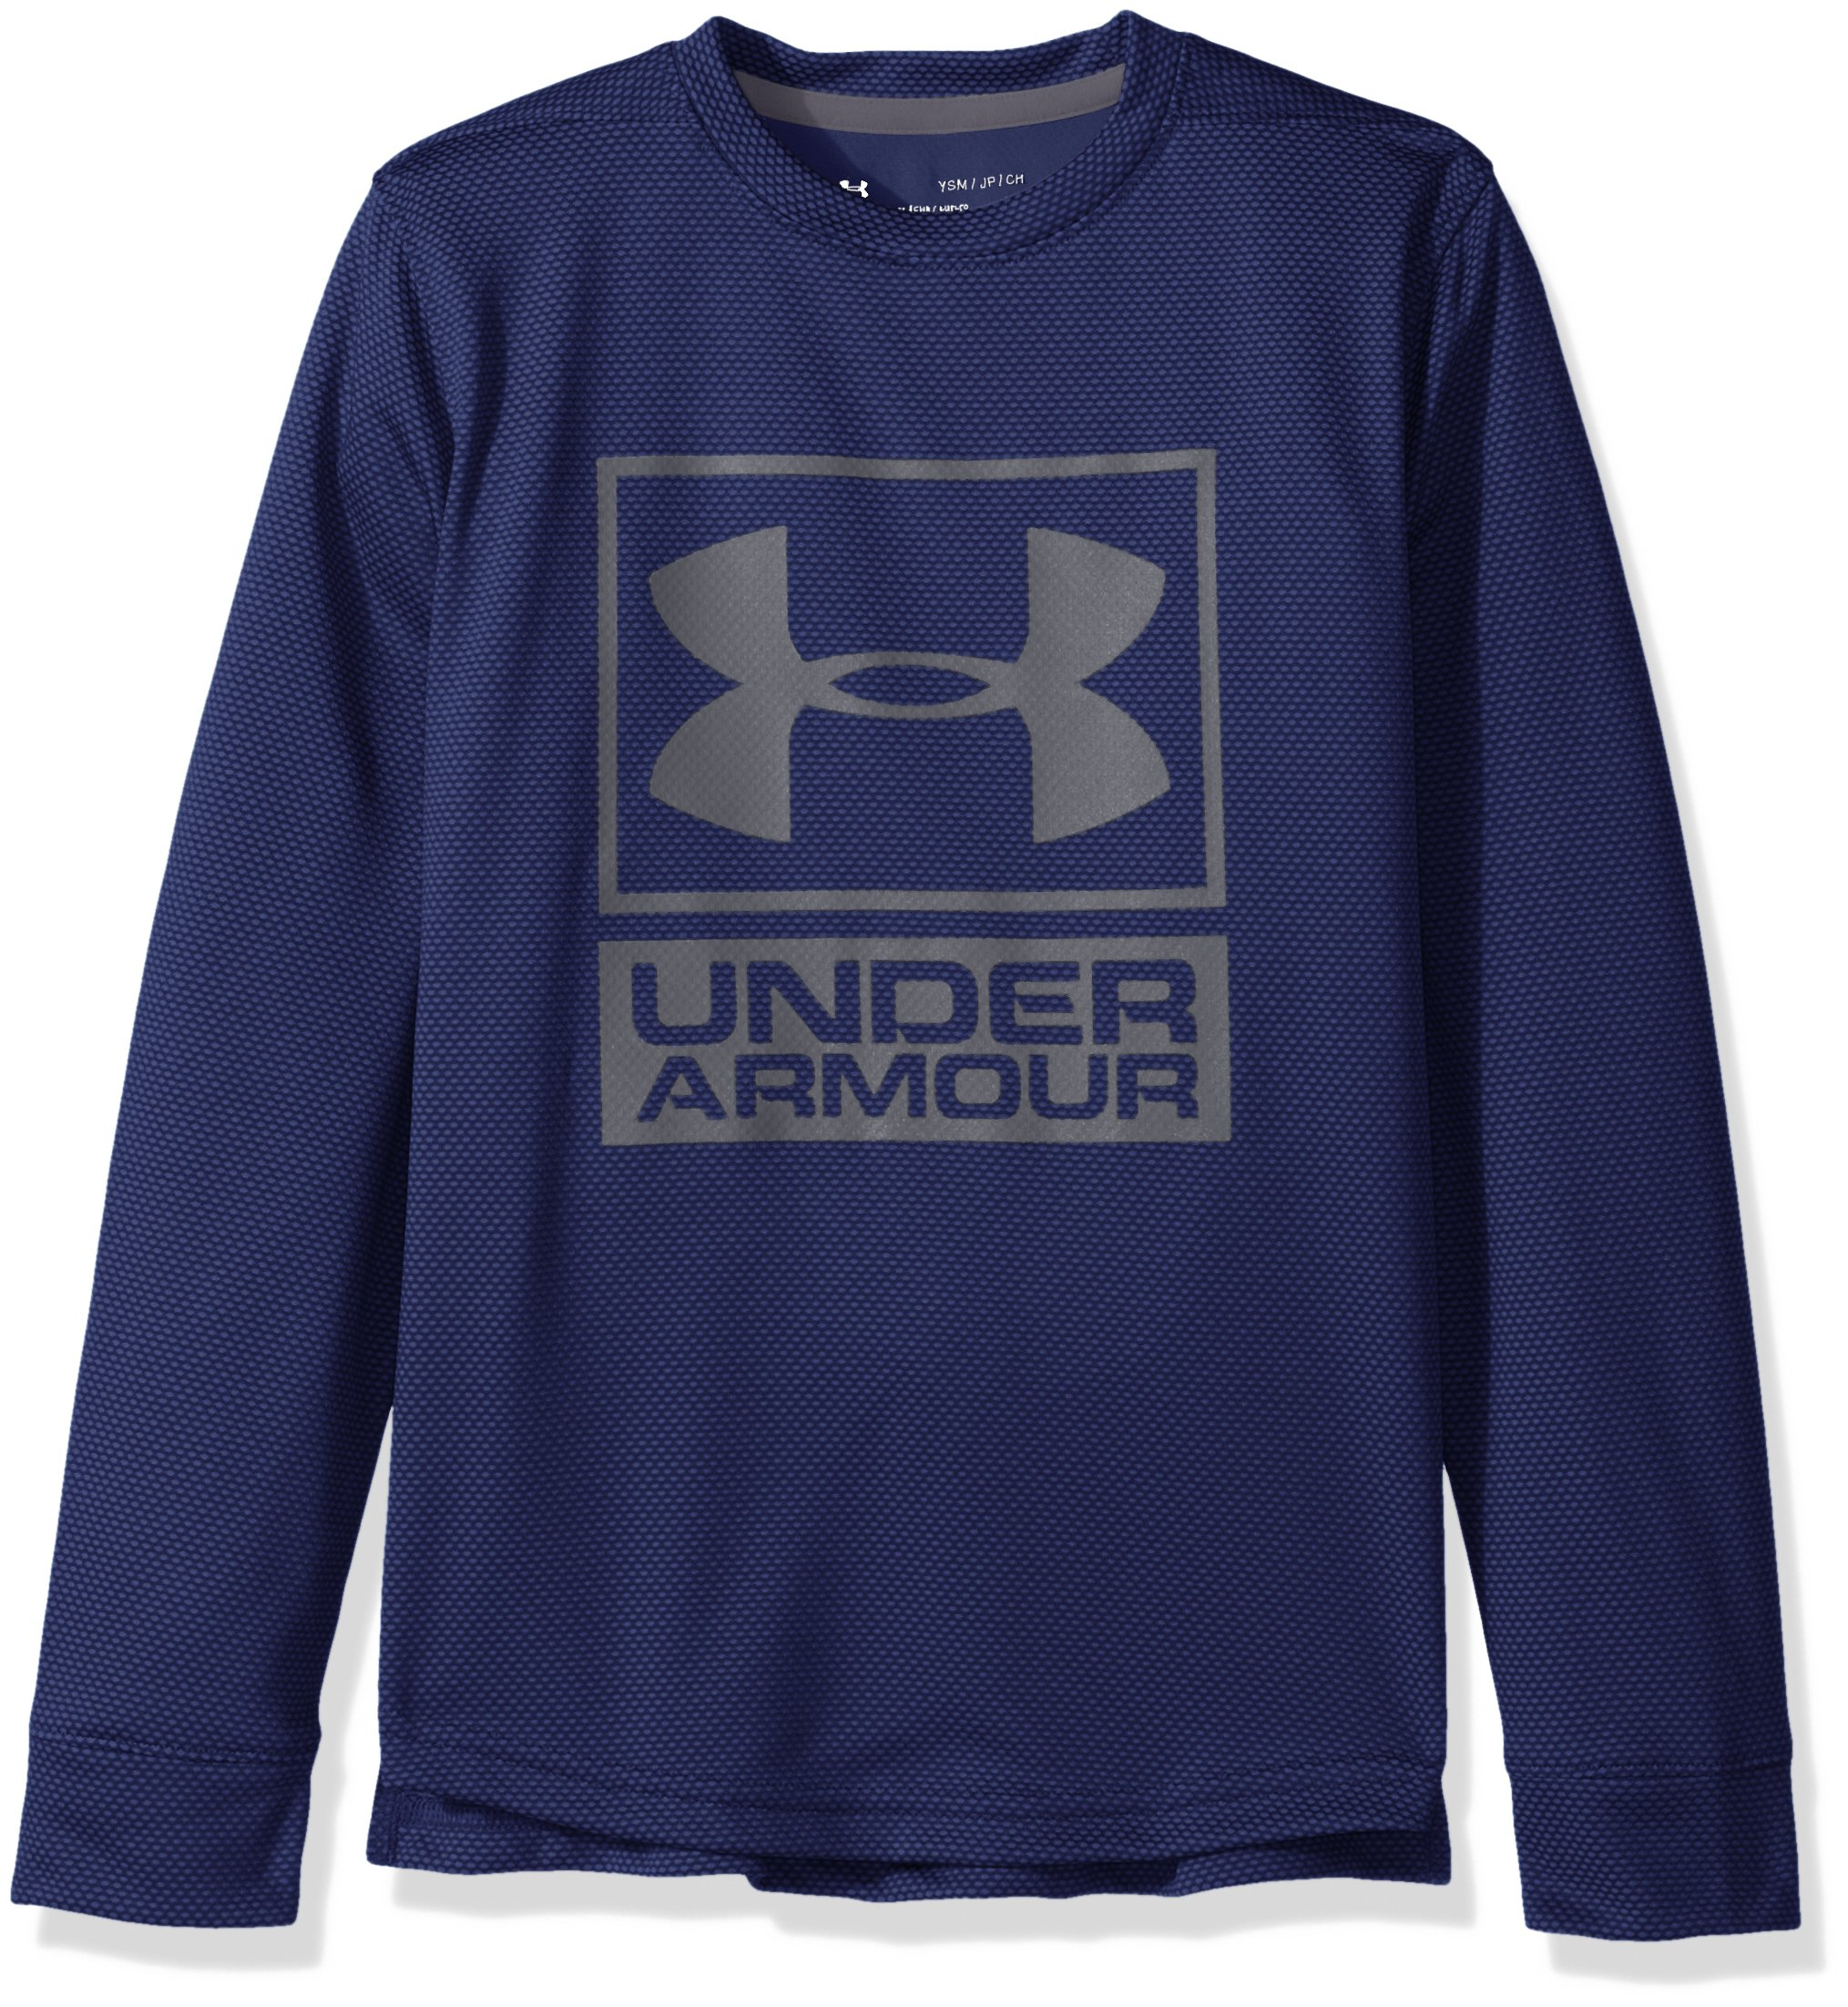 Under Armour Boys' Tech Textured Crew,Midnight Navy /Graphite, Youth Small by Under Armour